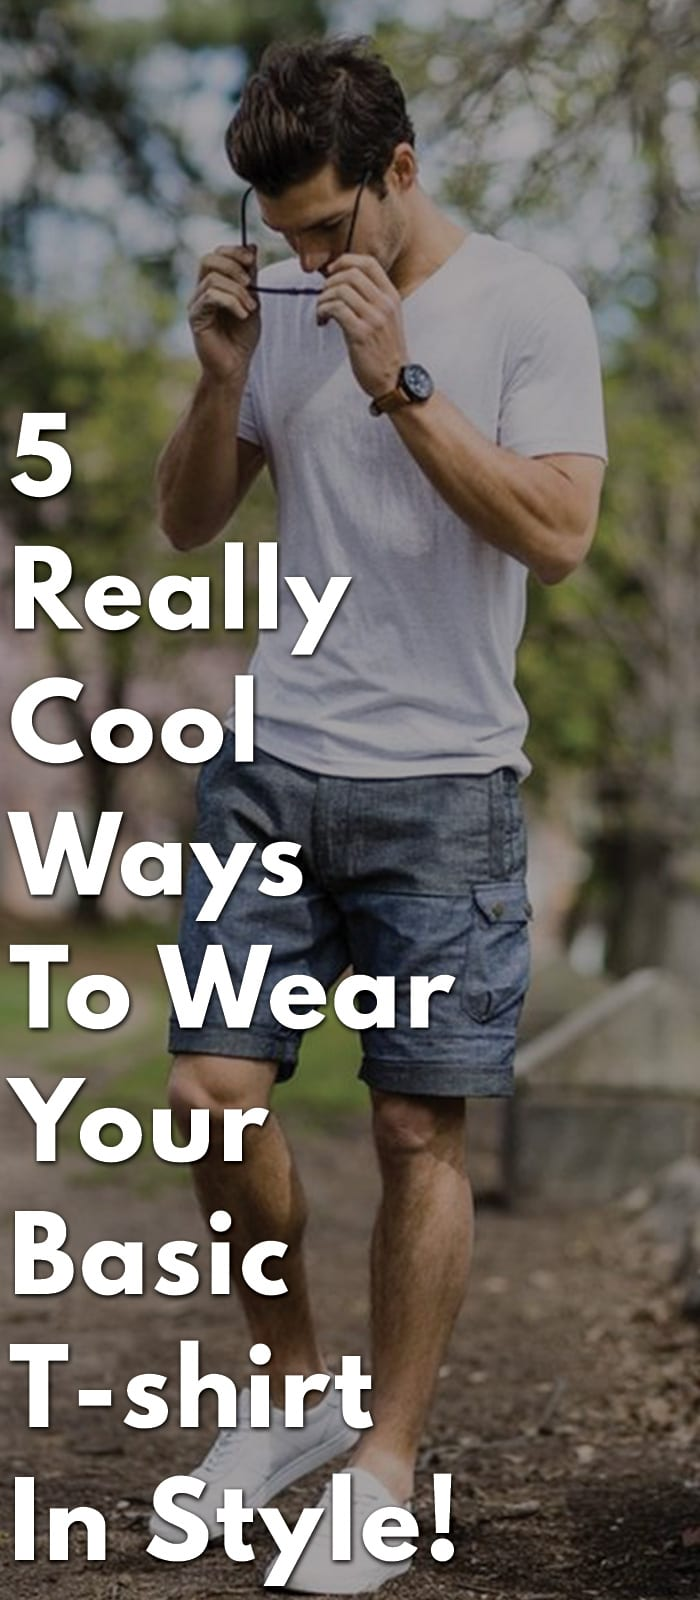 5-Really-Cool-Ways-to-Wear-Your-Basic-T-shirt-in-Style!